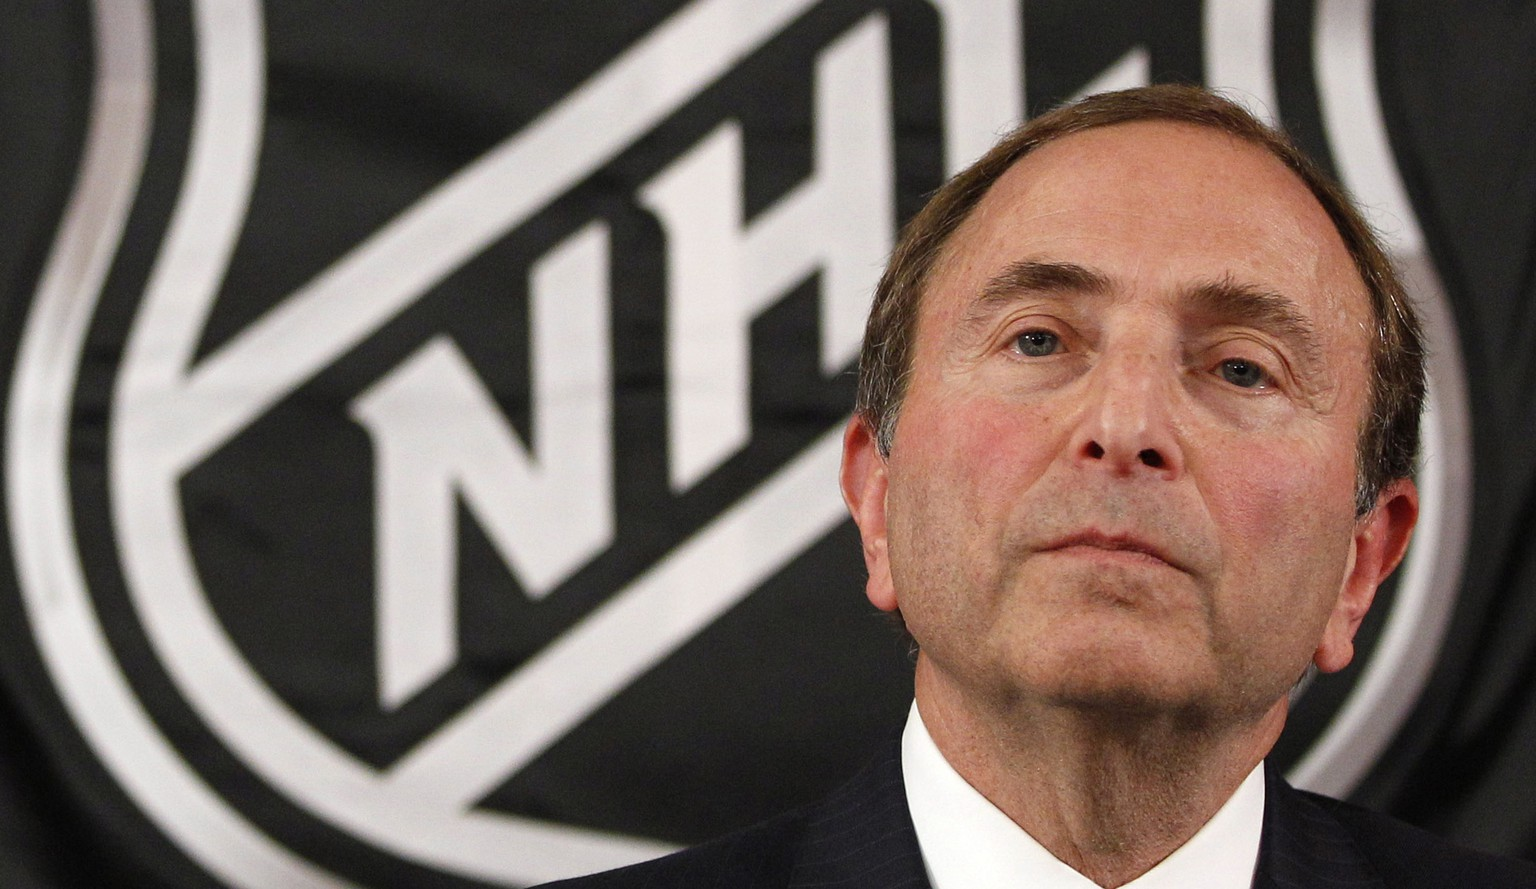 FILE - In this Sept. 13, 2012, file photo, NHL commissioner Gary Bettman listens as he meets with reporters after a meeting with team owners in New York. The National Hockey Leage Players' Association announces its decision whether to terminate the current collective bargaining agreement and set the clock ticking toward another potential work stoppage in 2020. (AP Photo/Mary Altaffer, File) Gary Bettman